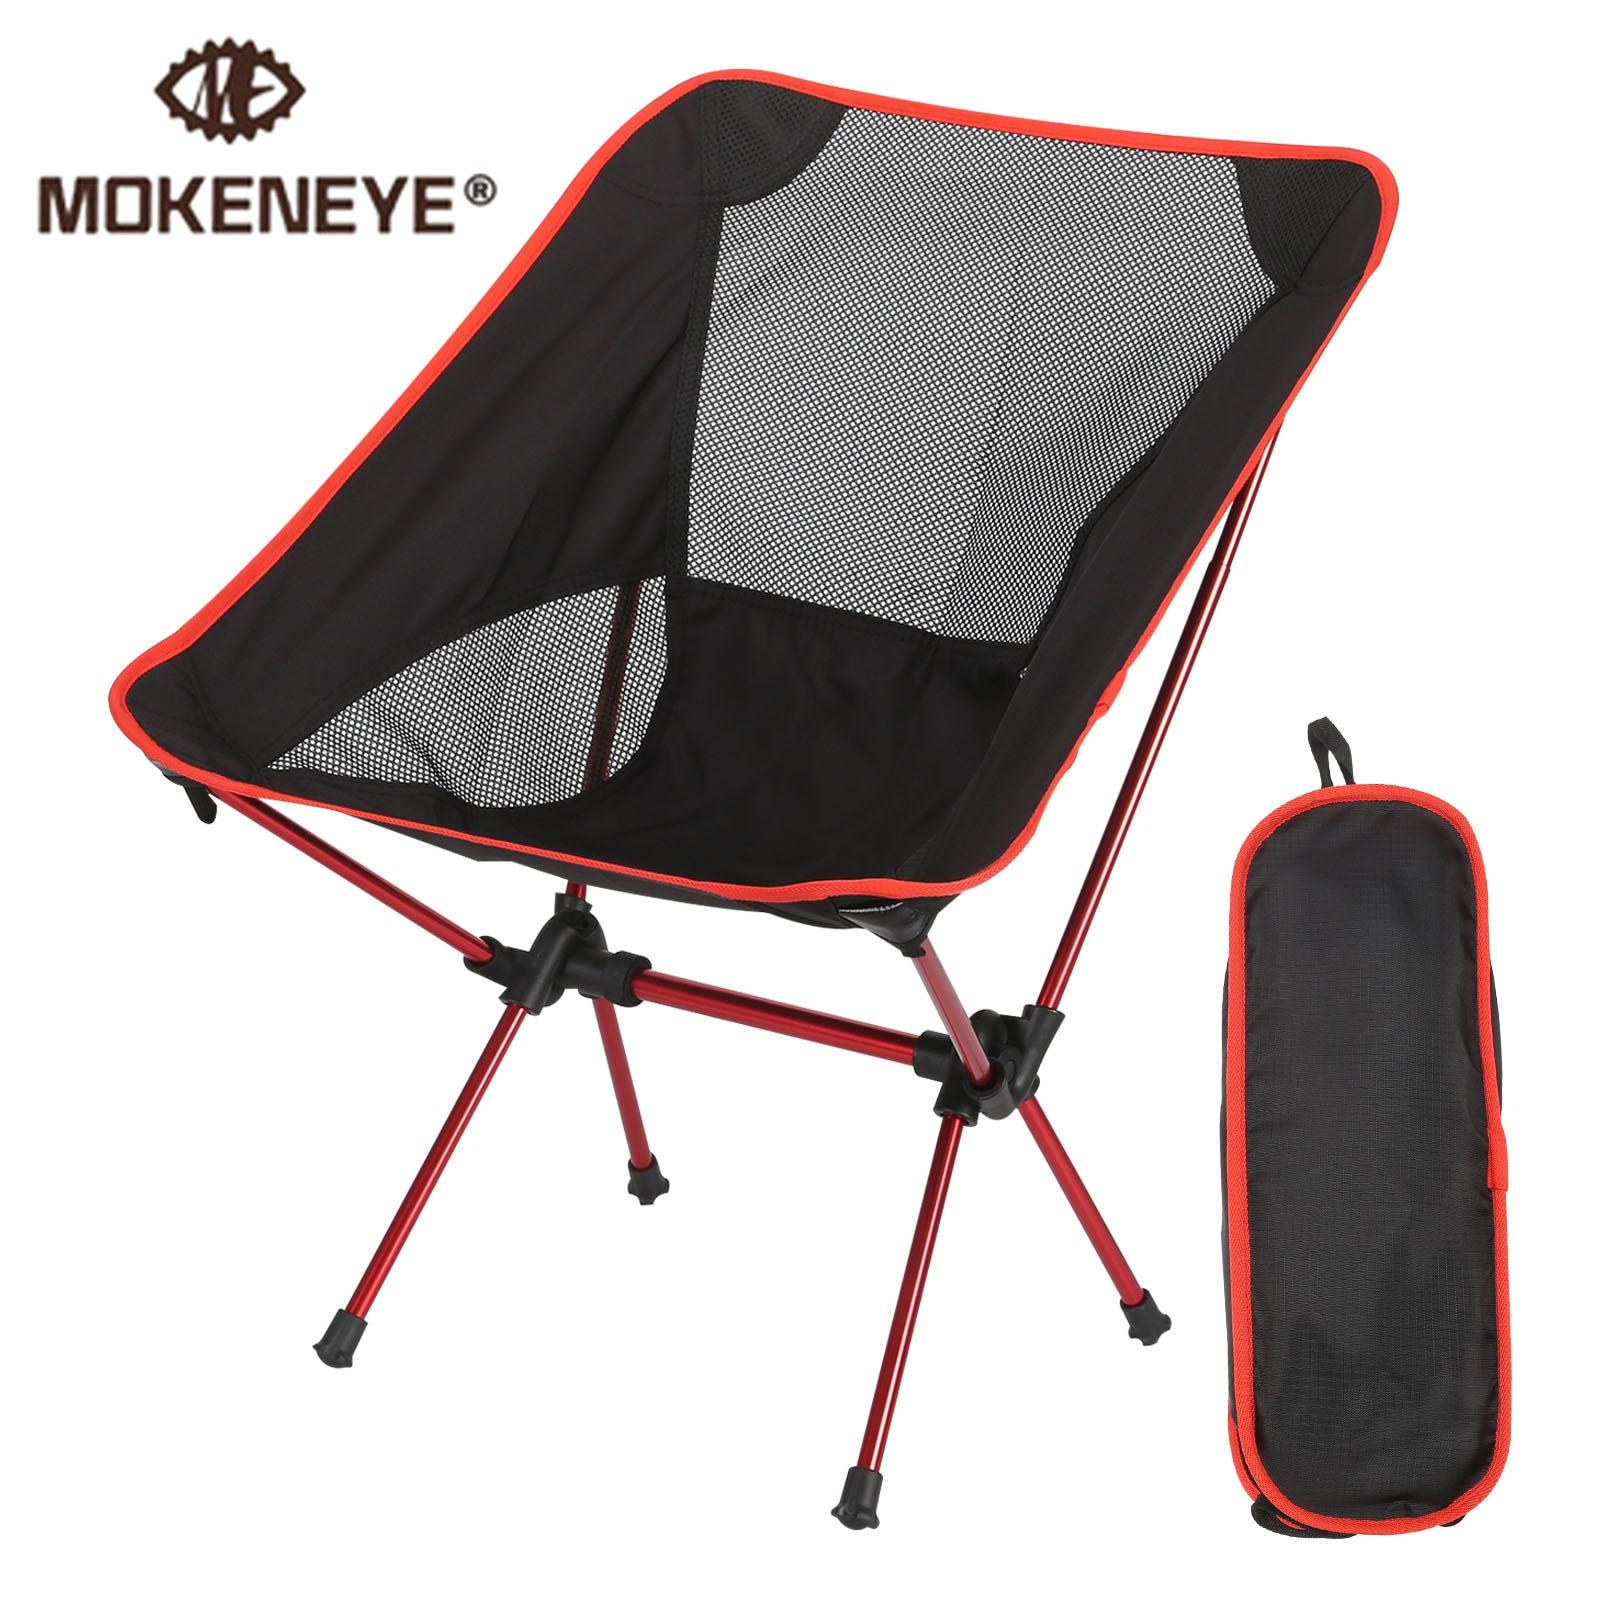 Ultralight Detachable Portable Moon Chair Lightweight Chair Folding Extended Seat Office Home Fishin